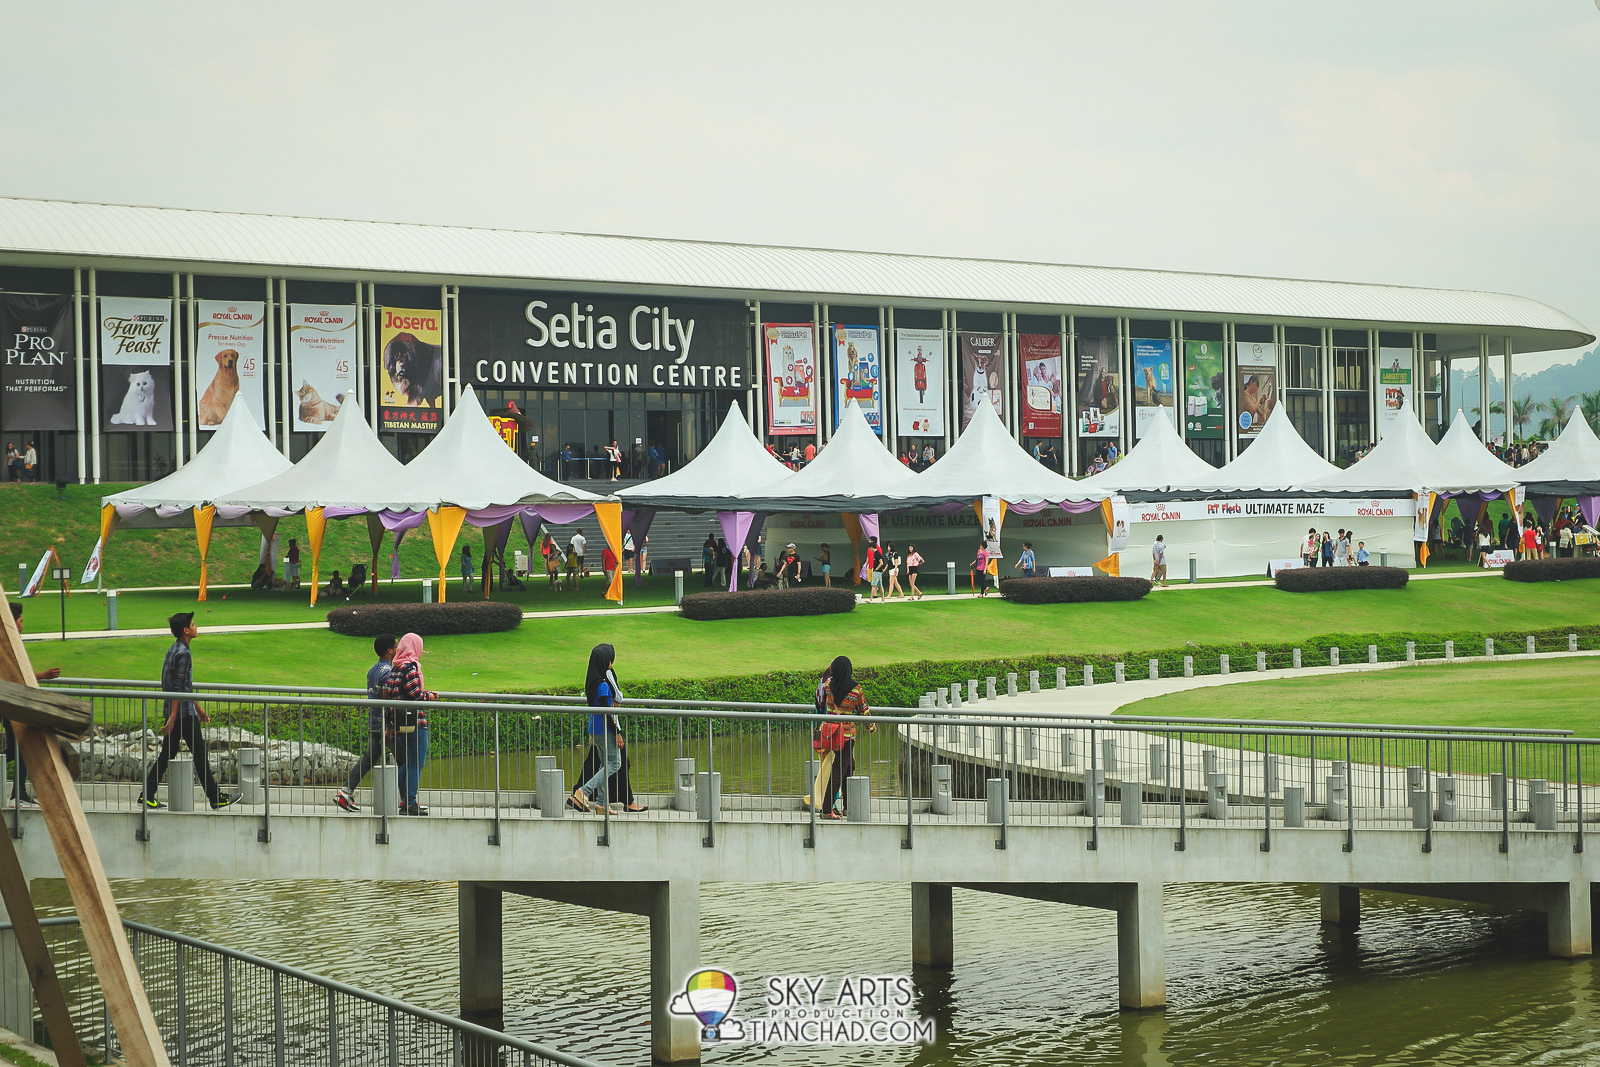 Setia City Convention Centre has a large outdoor compound set up for Pet Fiesta